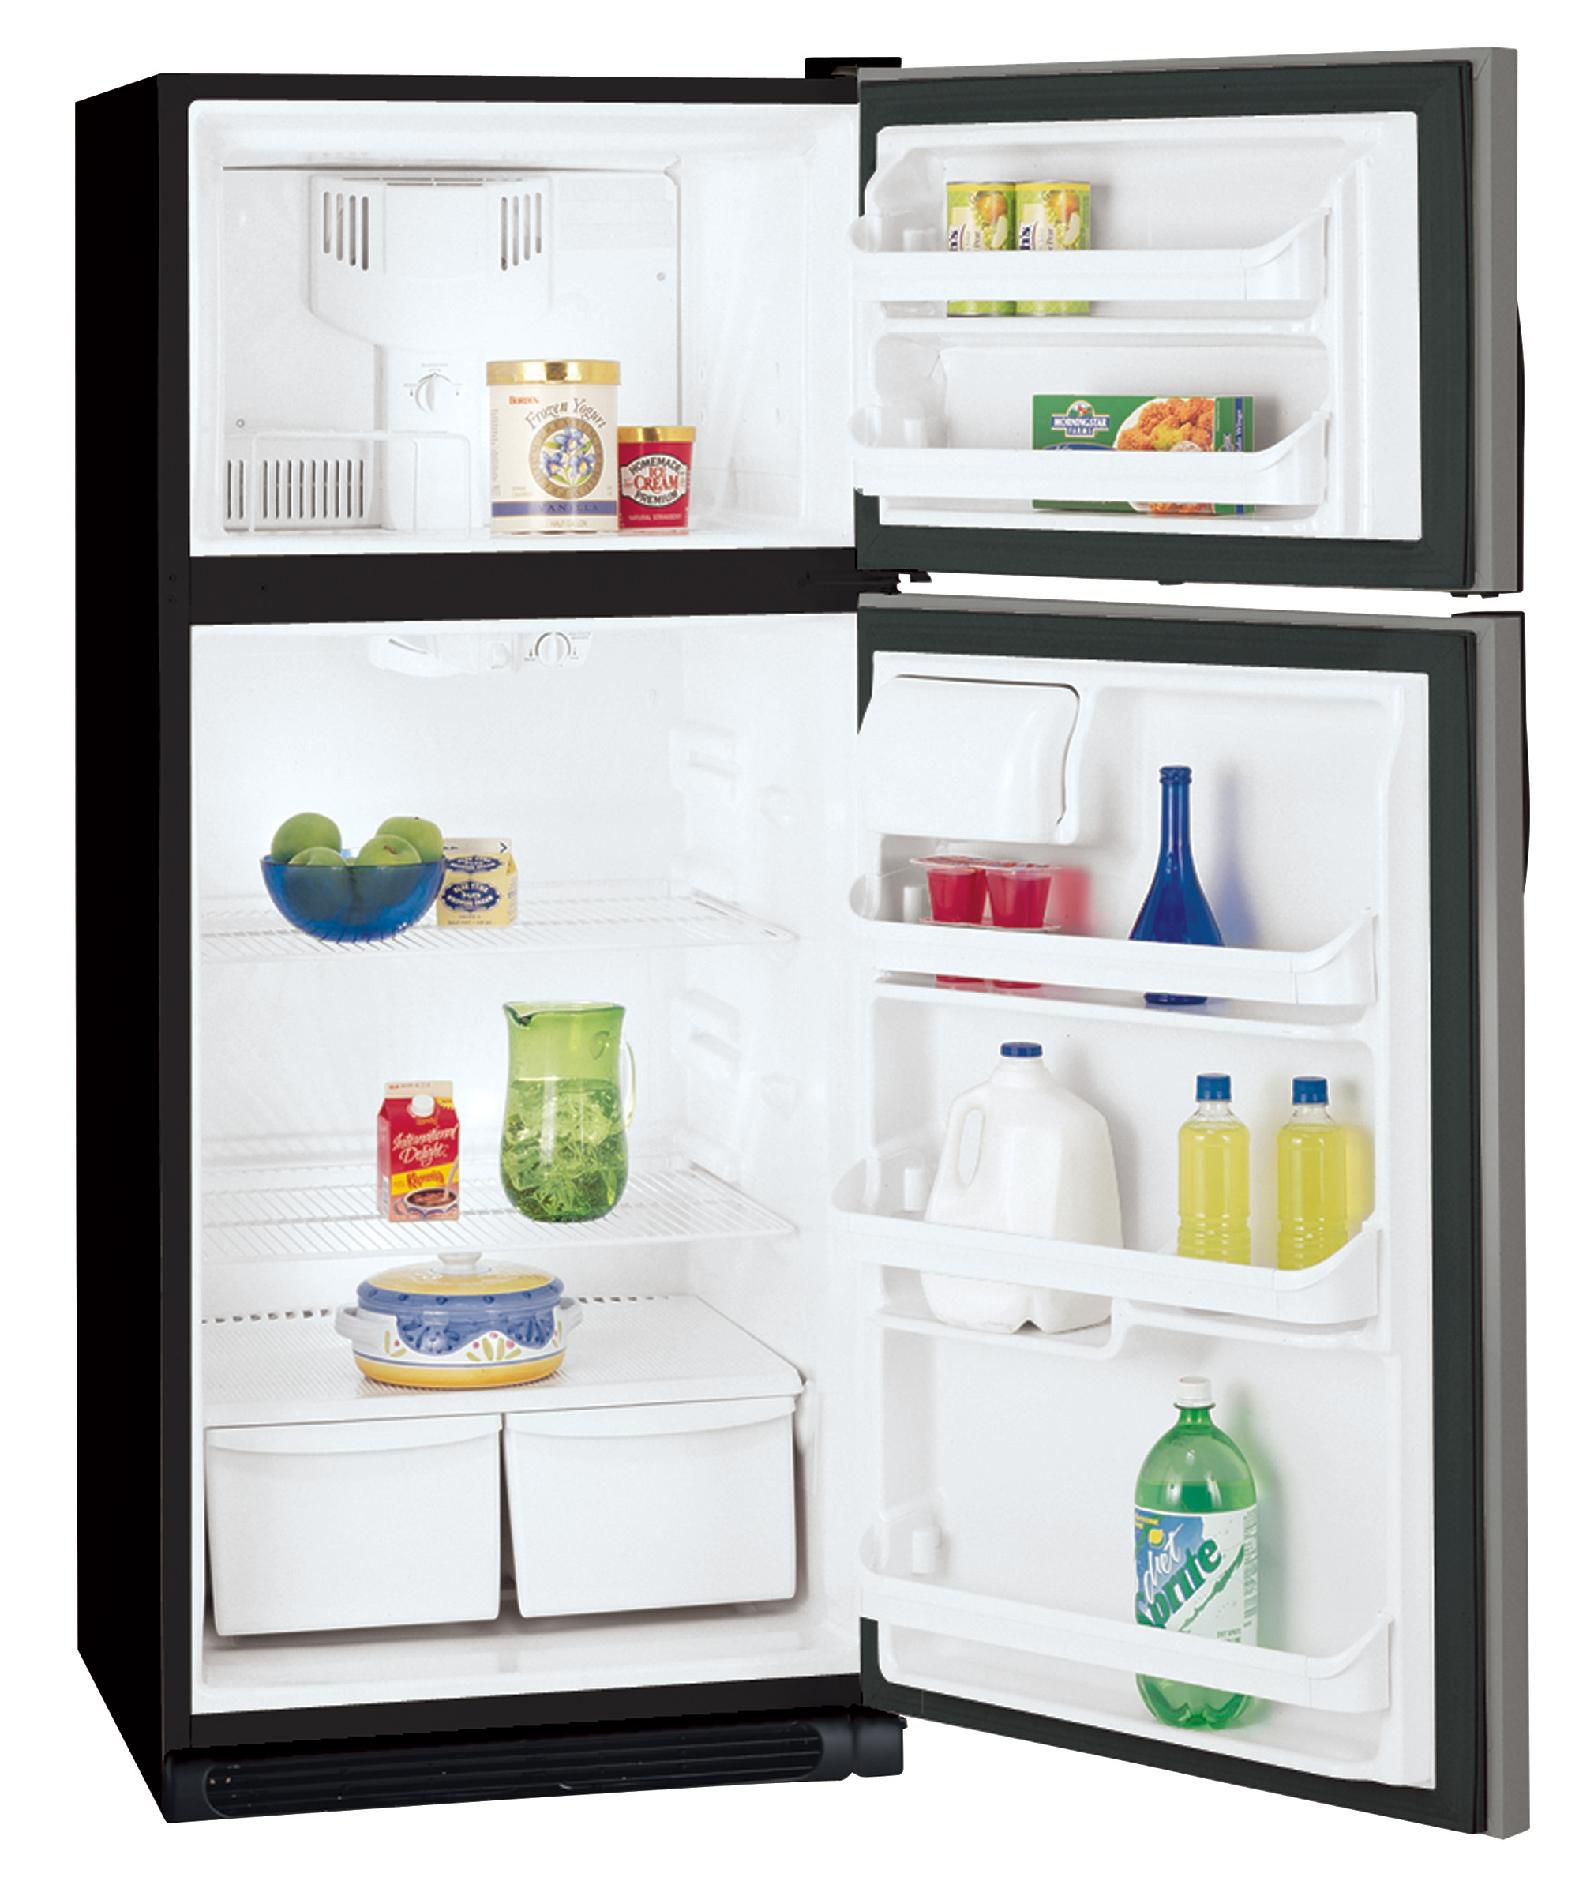 Kenmore 16.5 cu. ft. Right Hinge Only Top-Freezer Refrigerator, Non-Ice